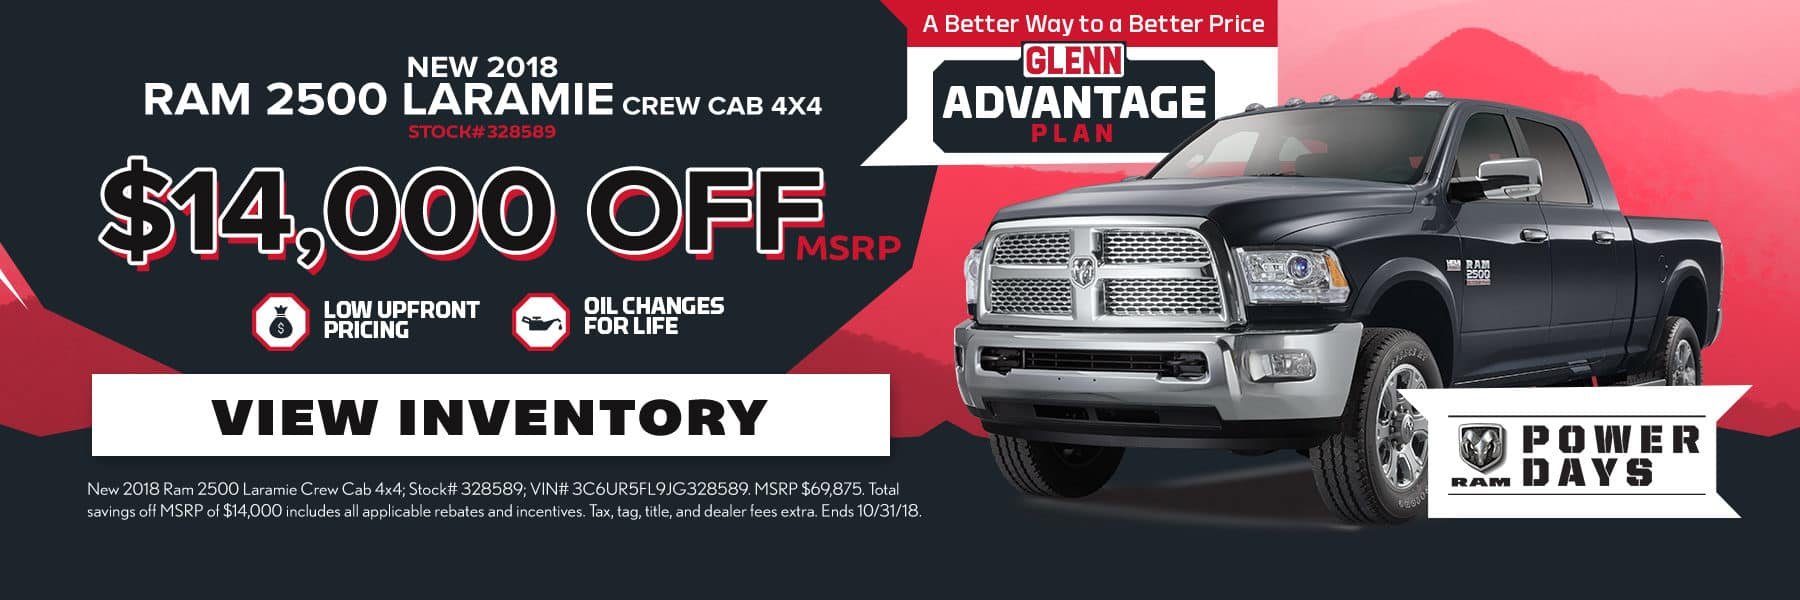 New 2018 RAM 2500 Offer Oct18